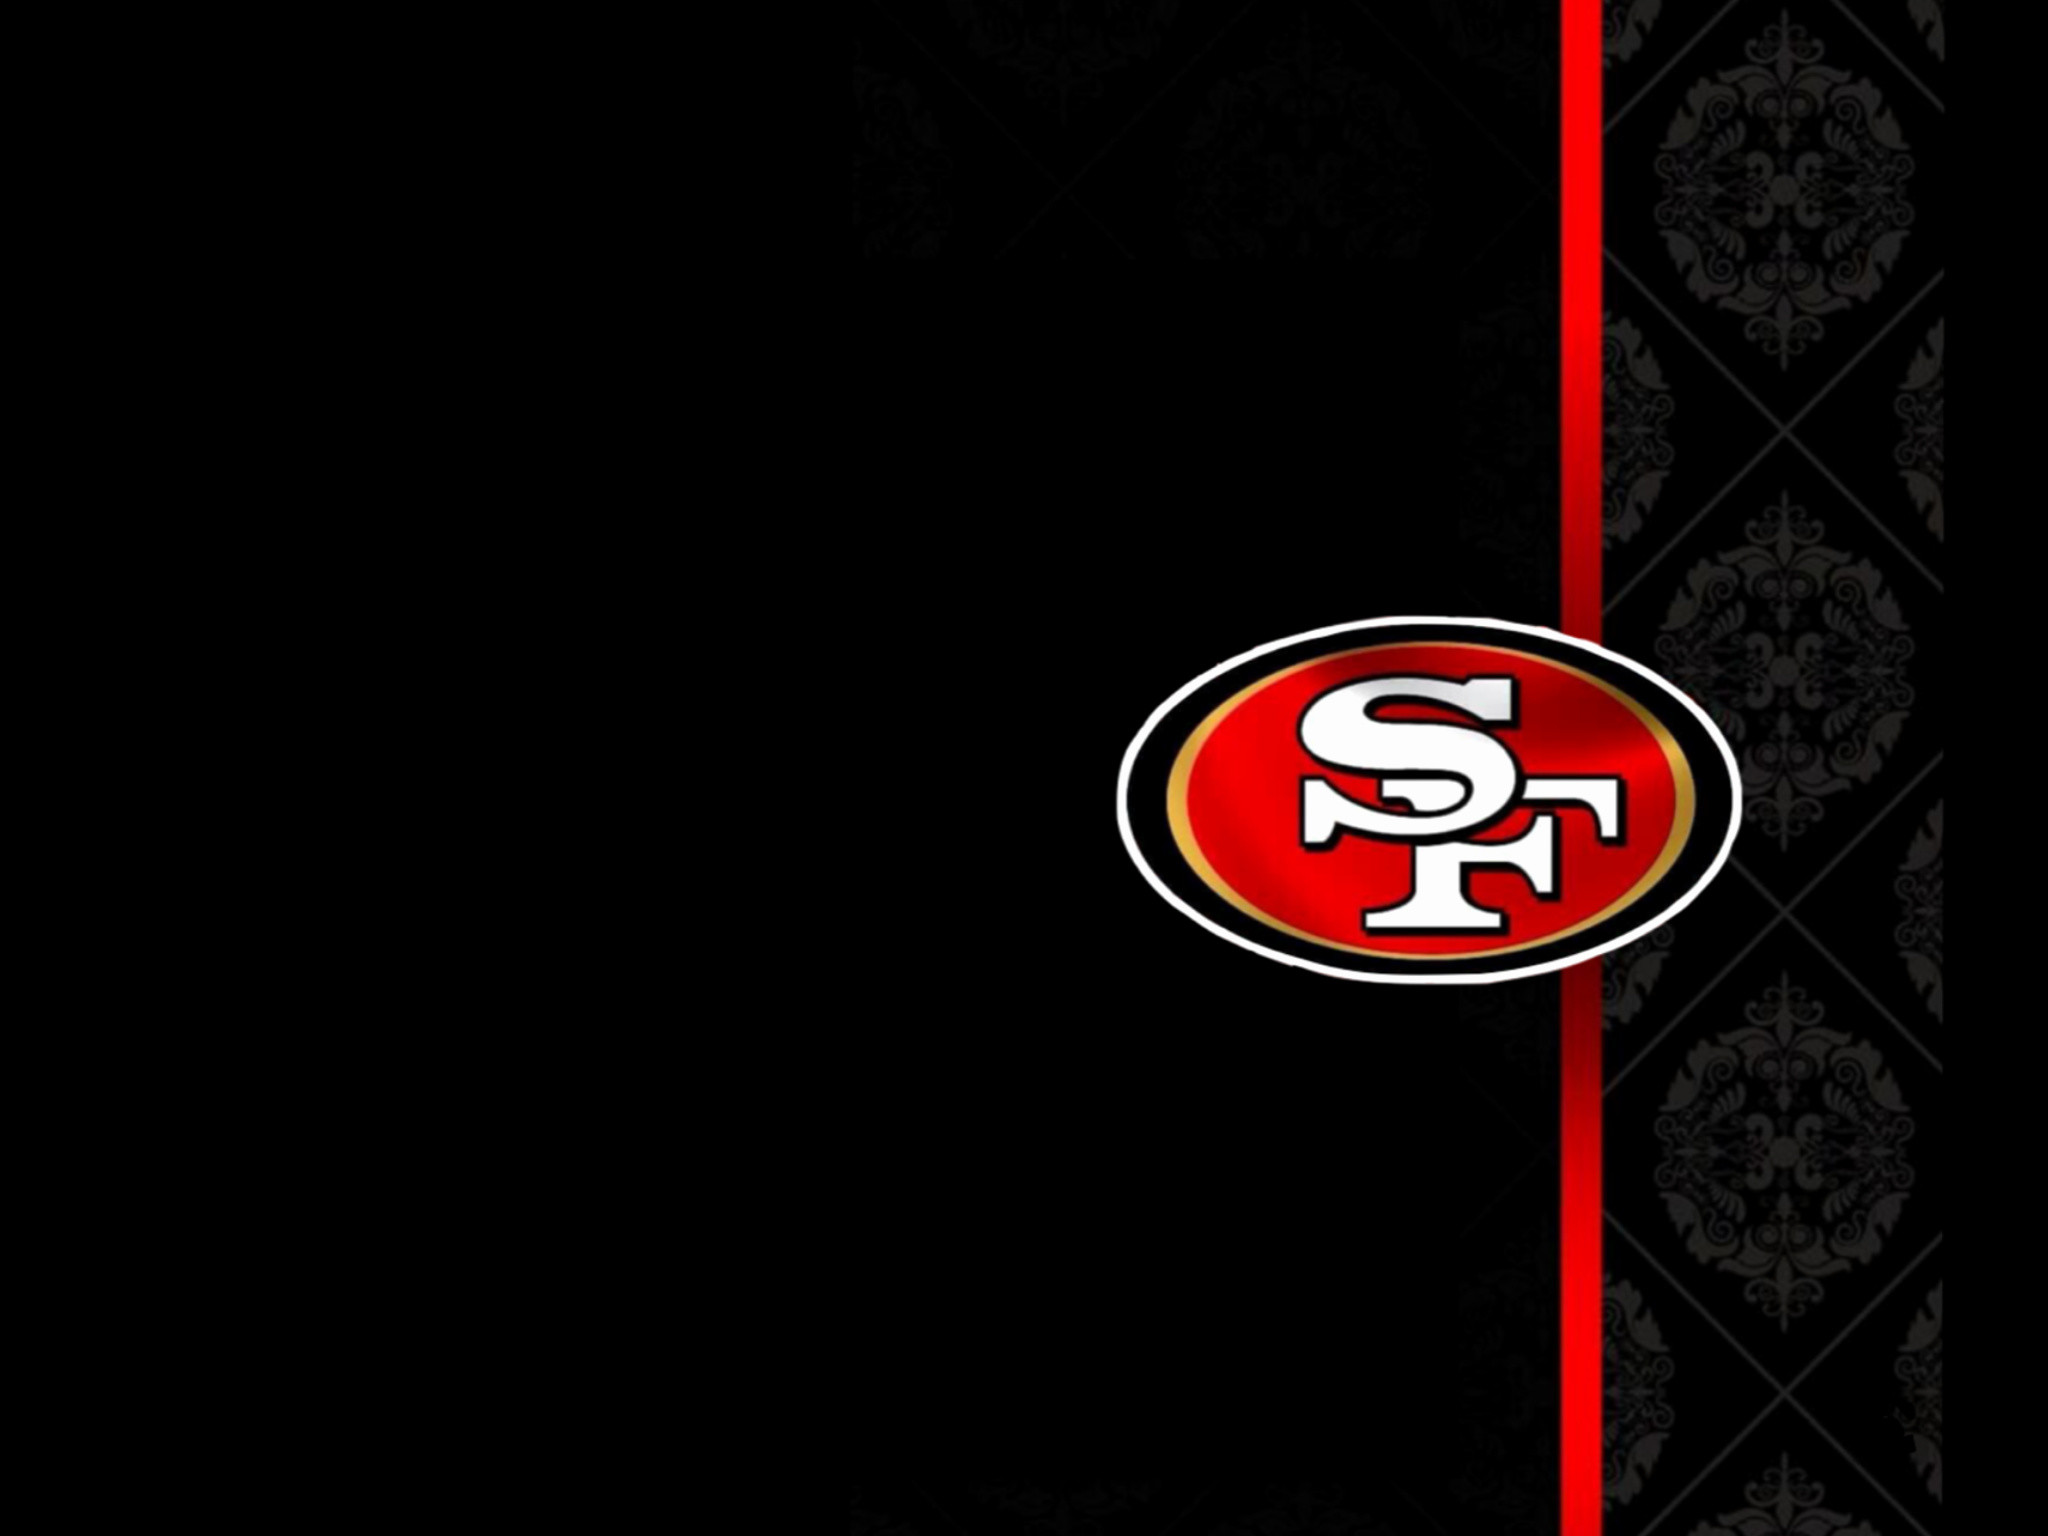 1920x1080 San Francisco 49ers Live Wallpaper Backgrounds Hd Images For Desktop Ers And Background